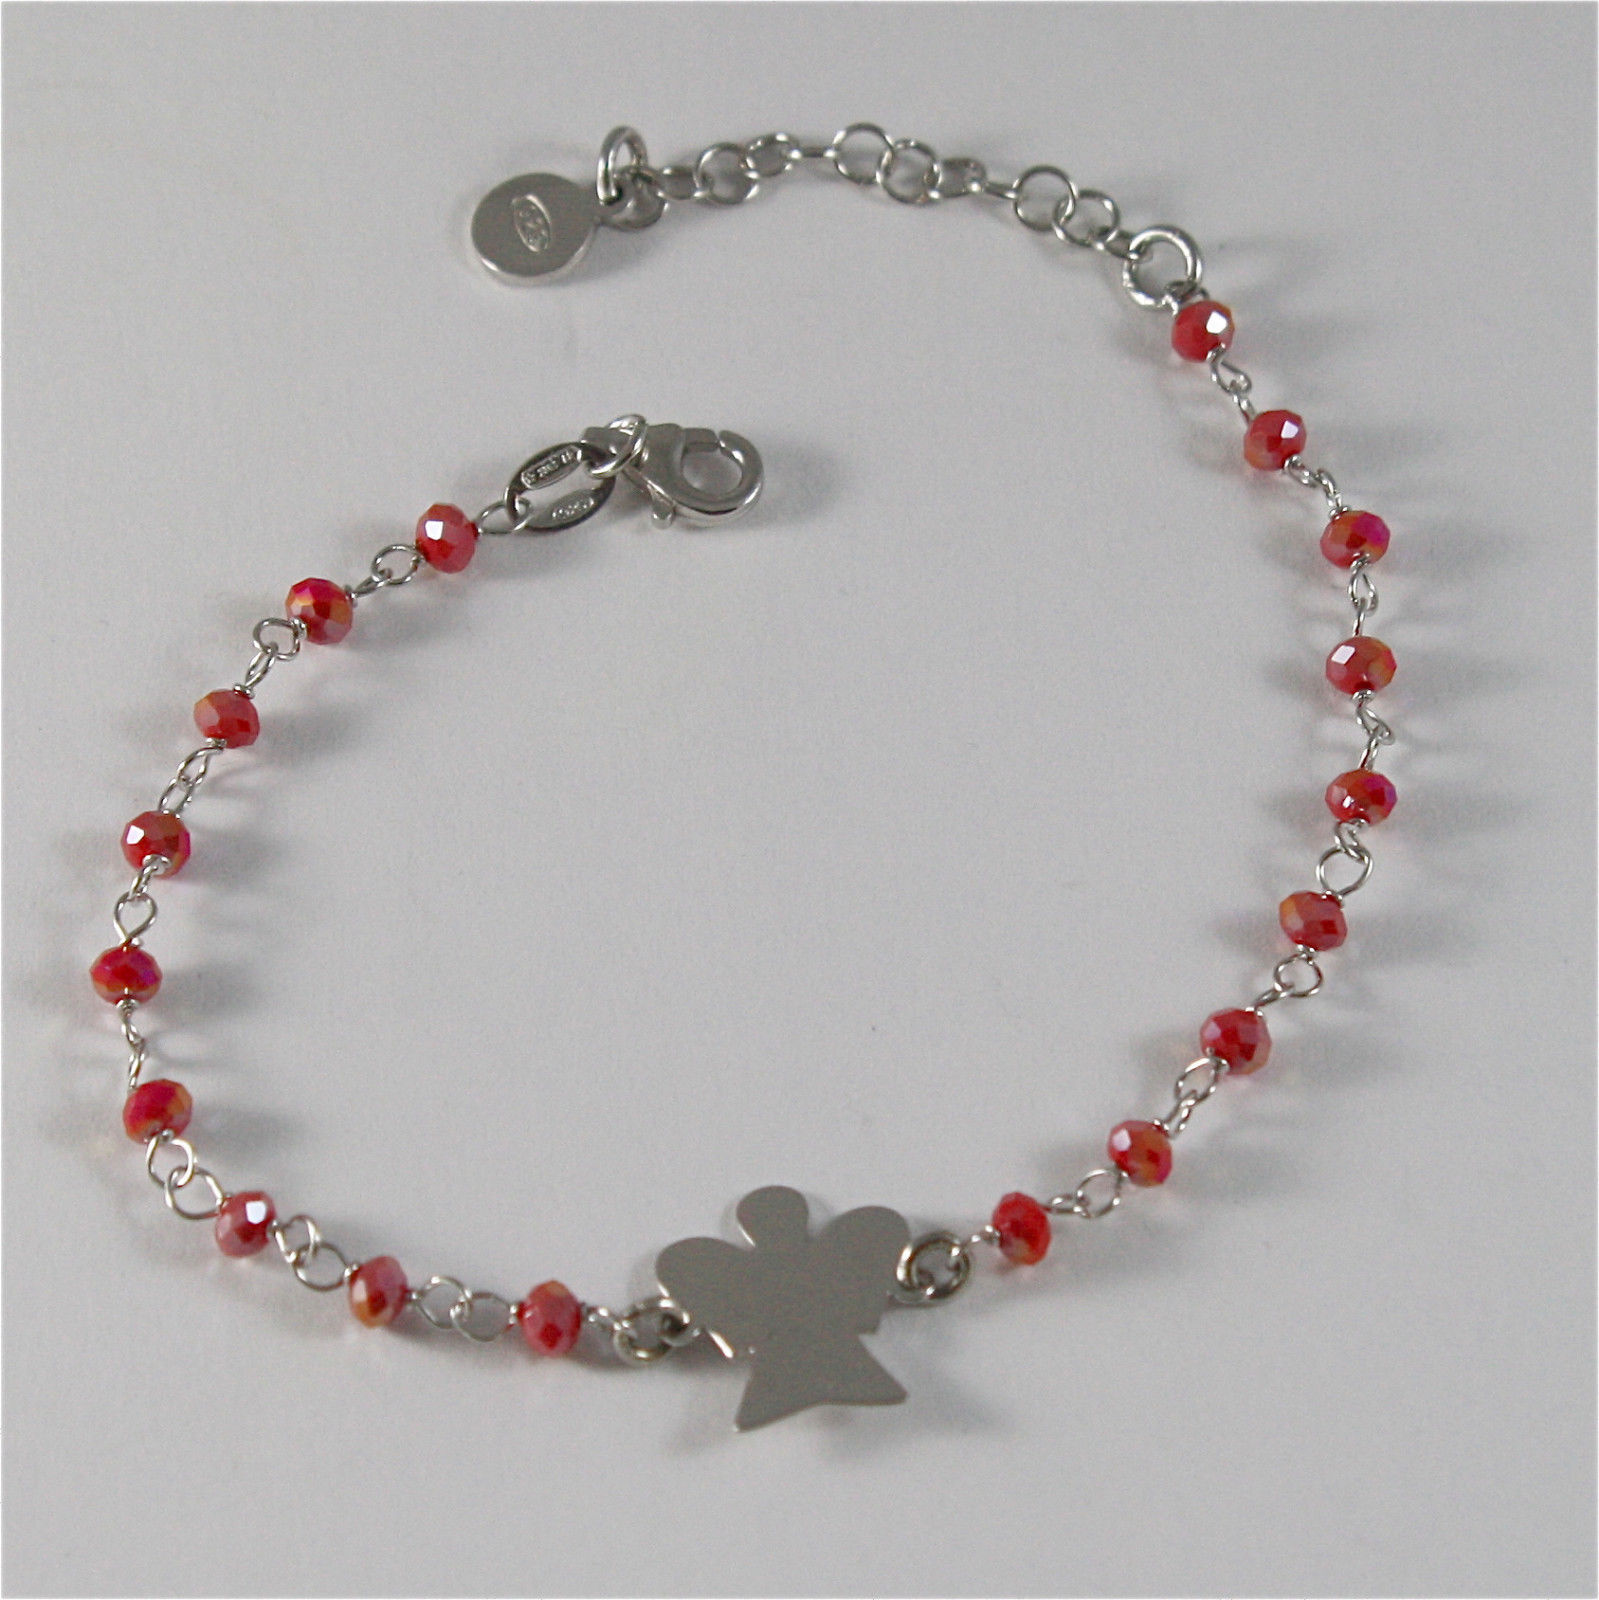 925 RHODIUM SILVER BRACELET WITH ANGEL AND RED CRYSTALS 7.09 IN